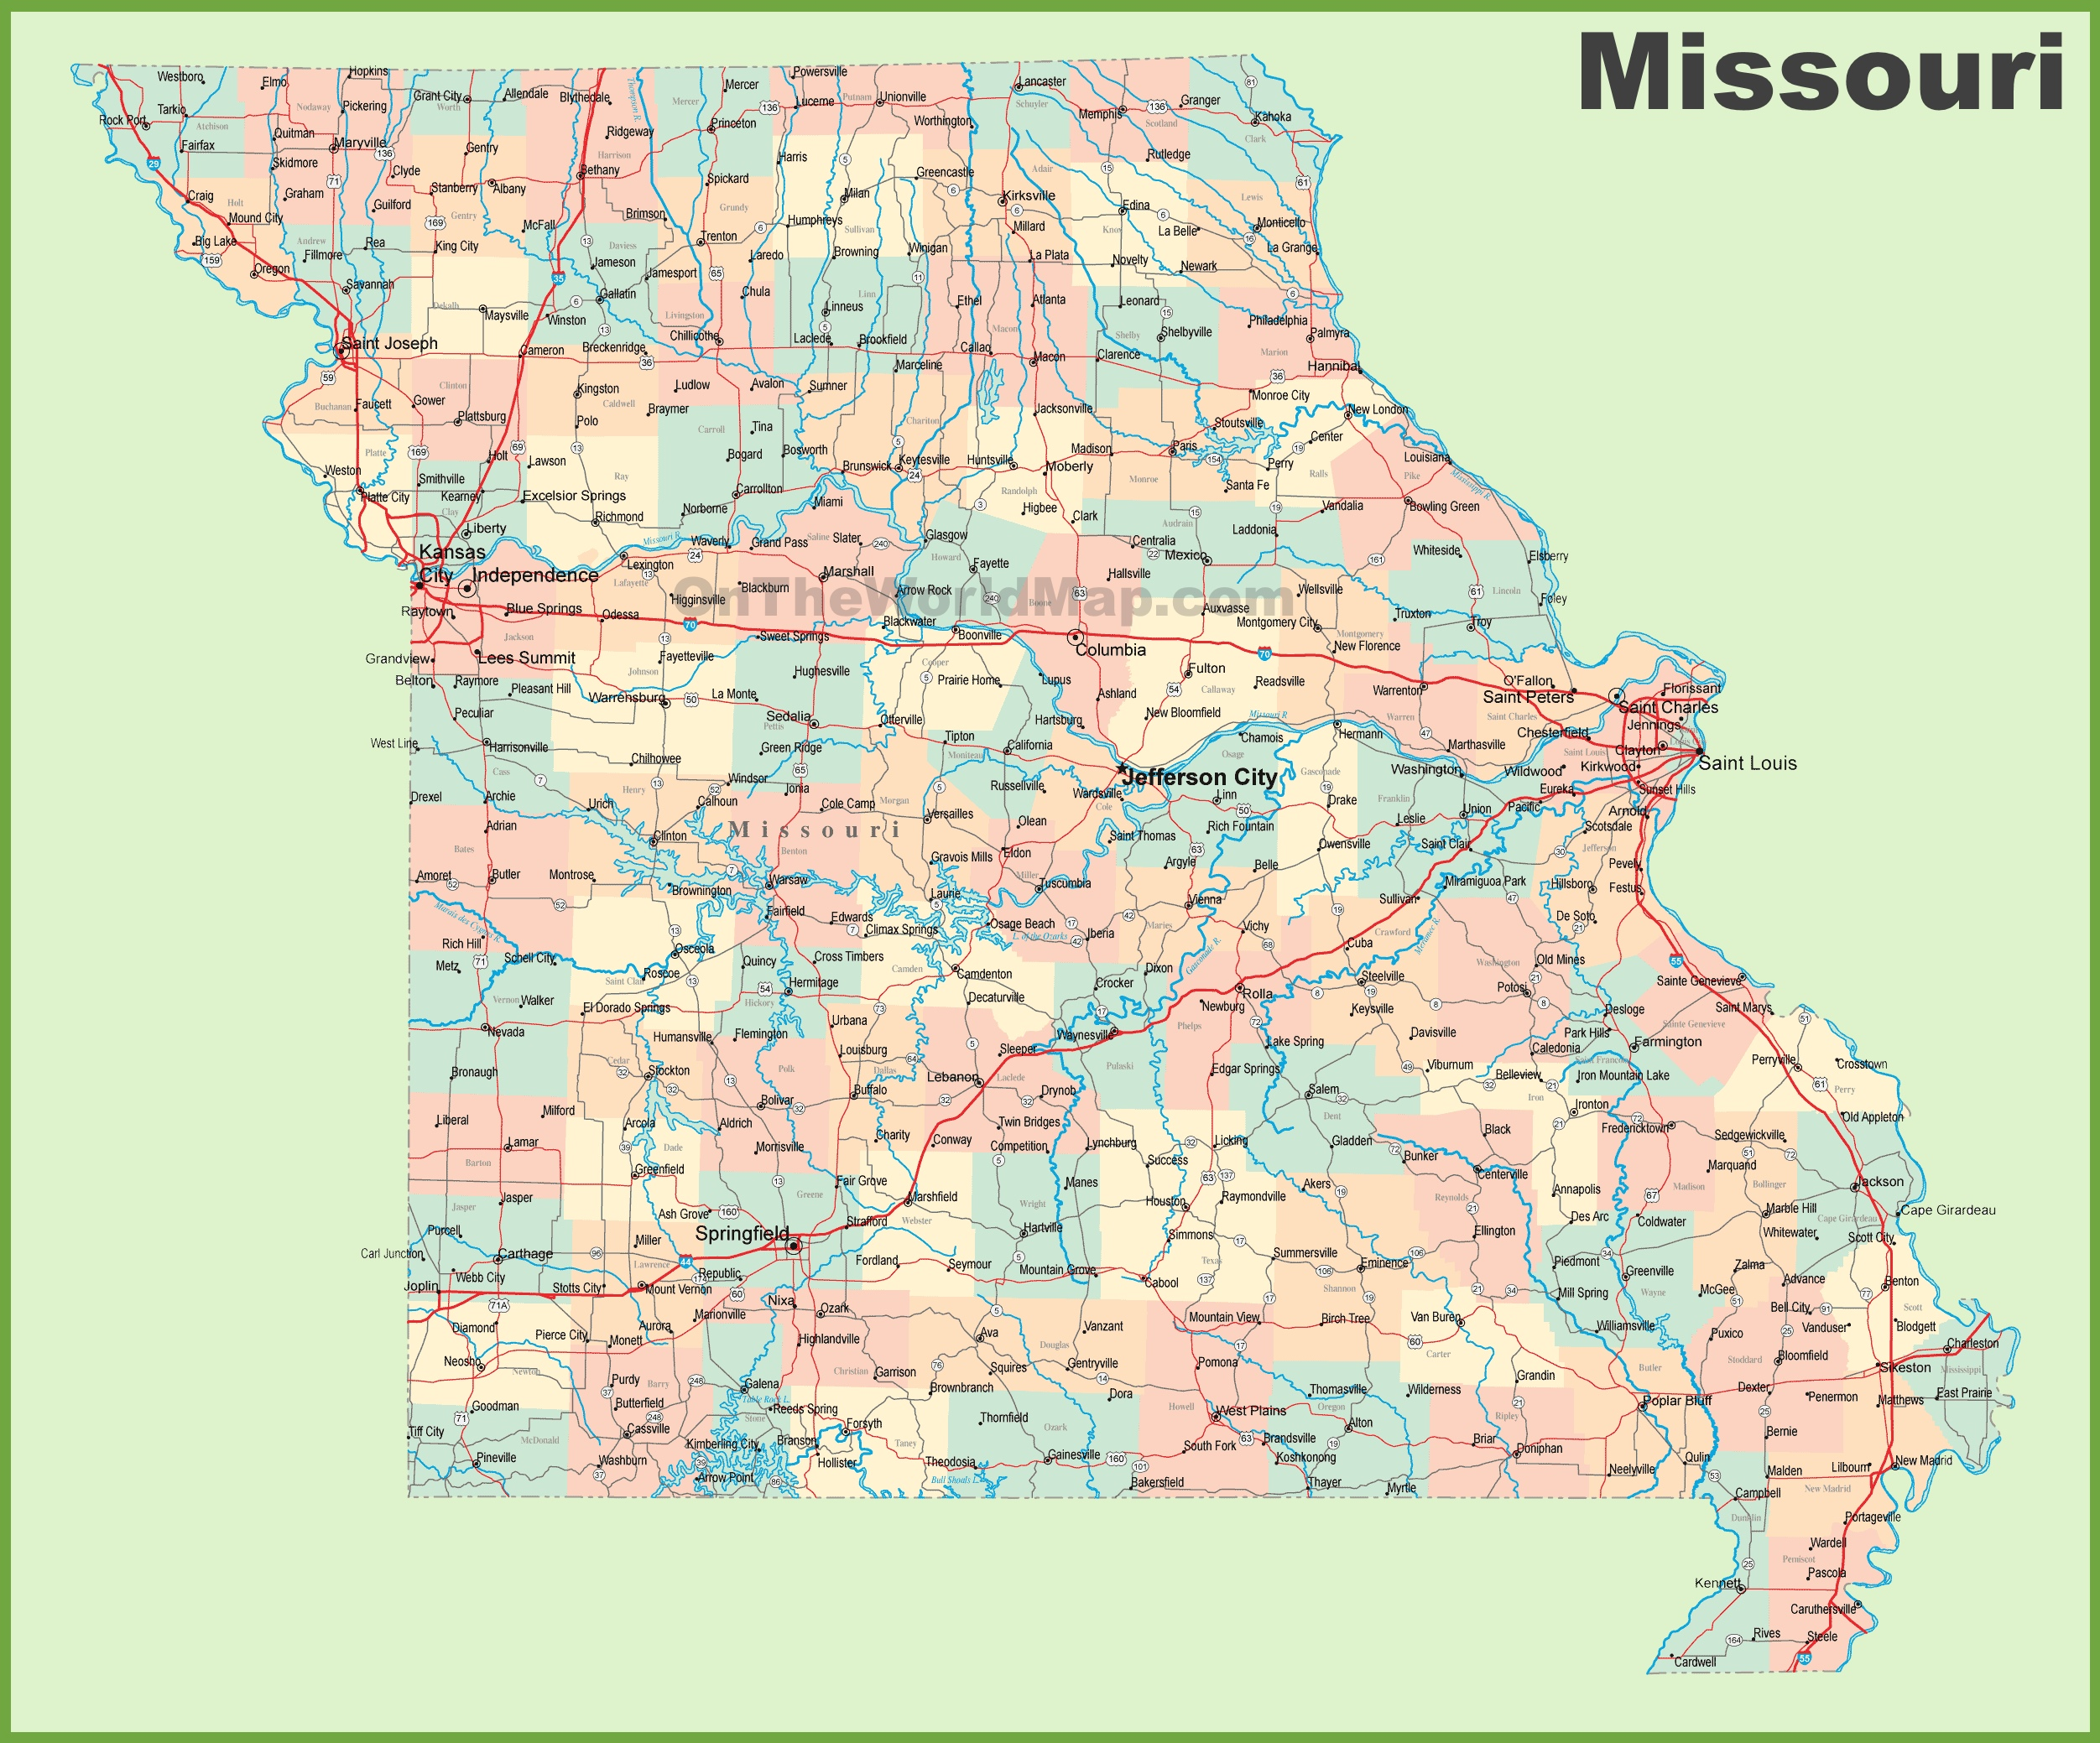 Missouri Map With Cities Road map of Missouri with cities